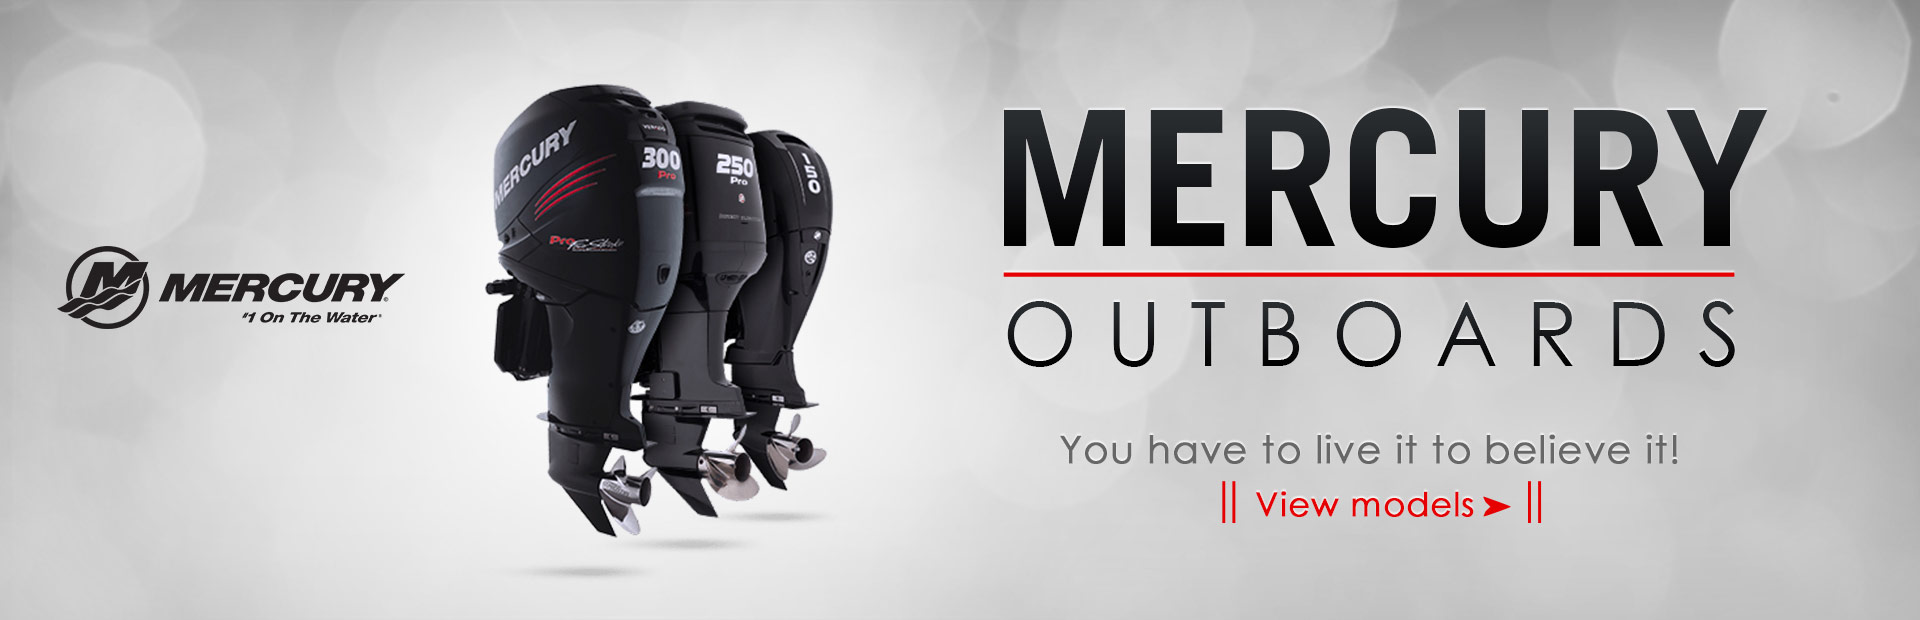 Click here to view Mercury outboard motors.